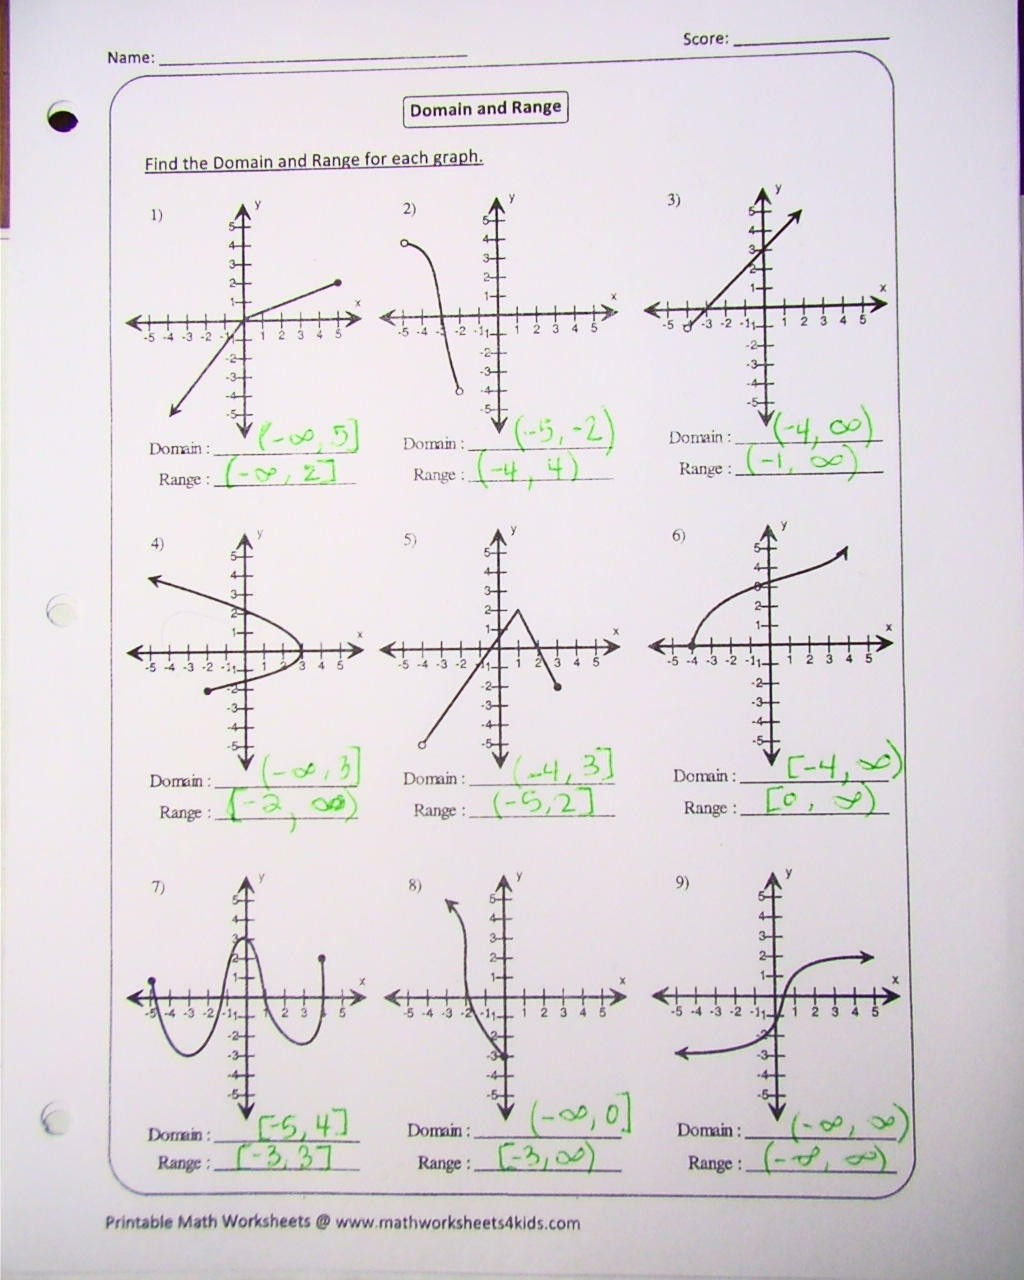 Worksheets Domain And Range Worksheets honors precalc homework determine domain and range 6 problems